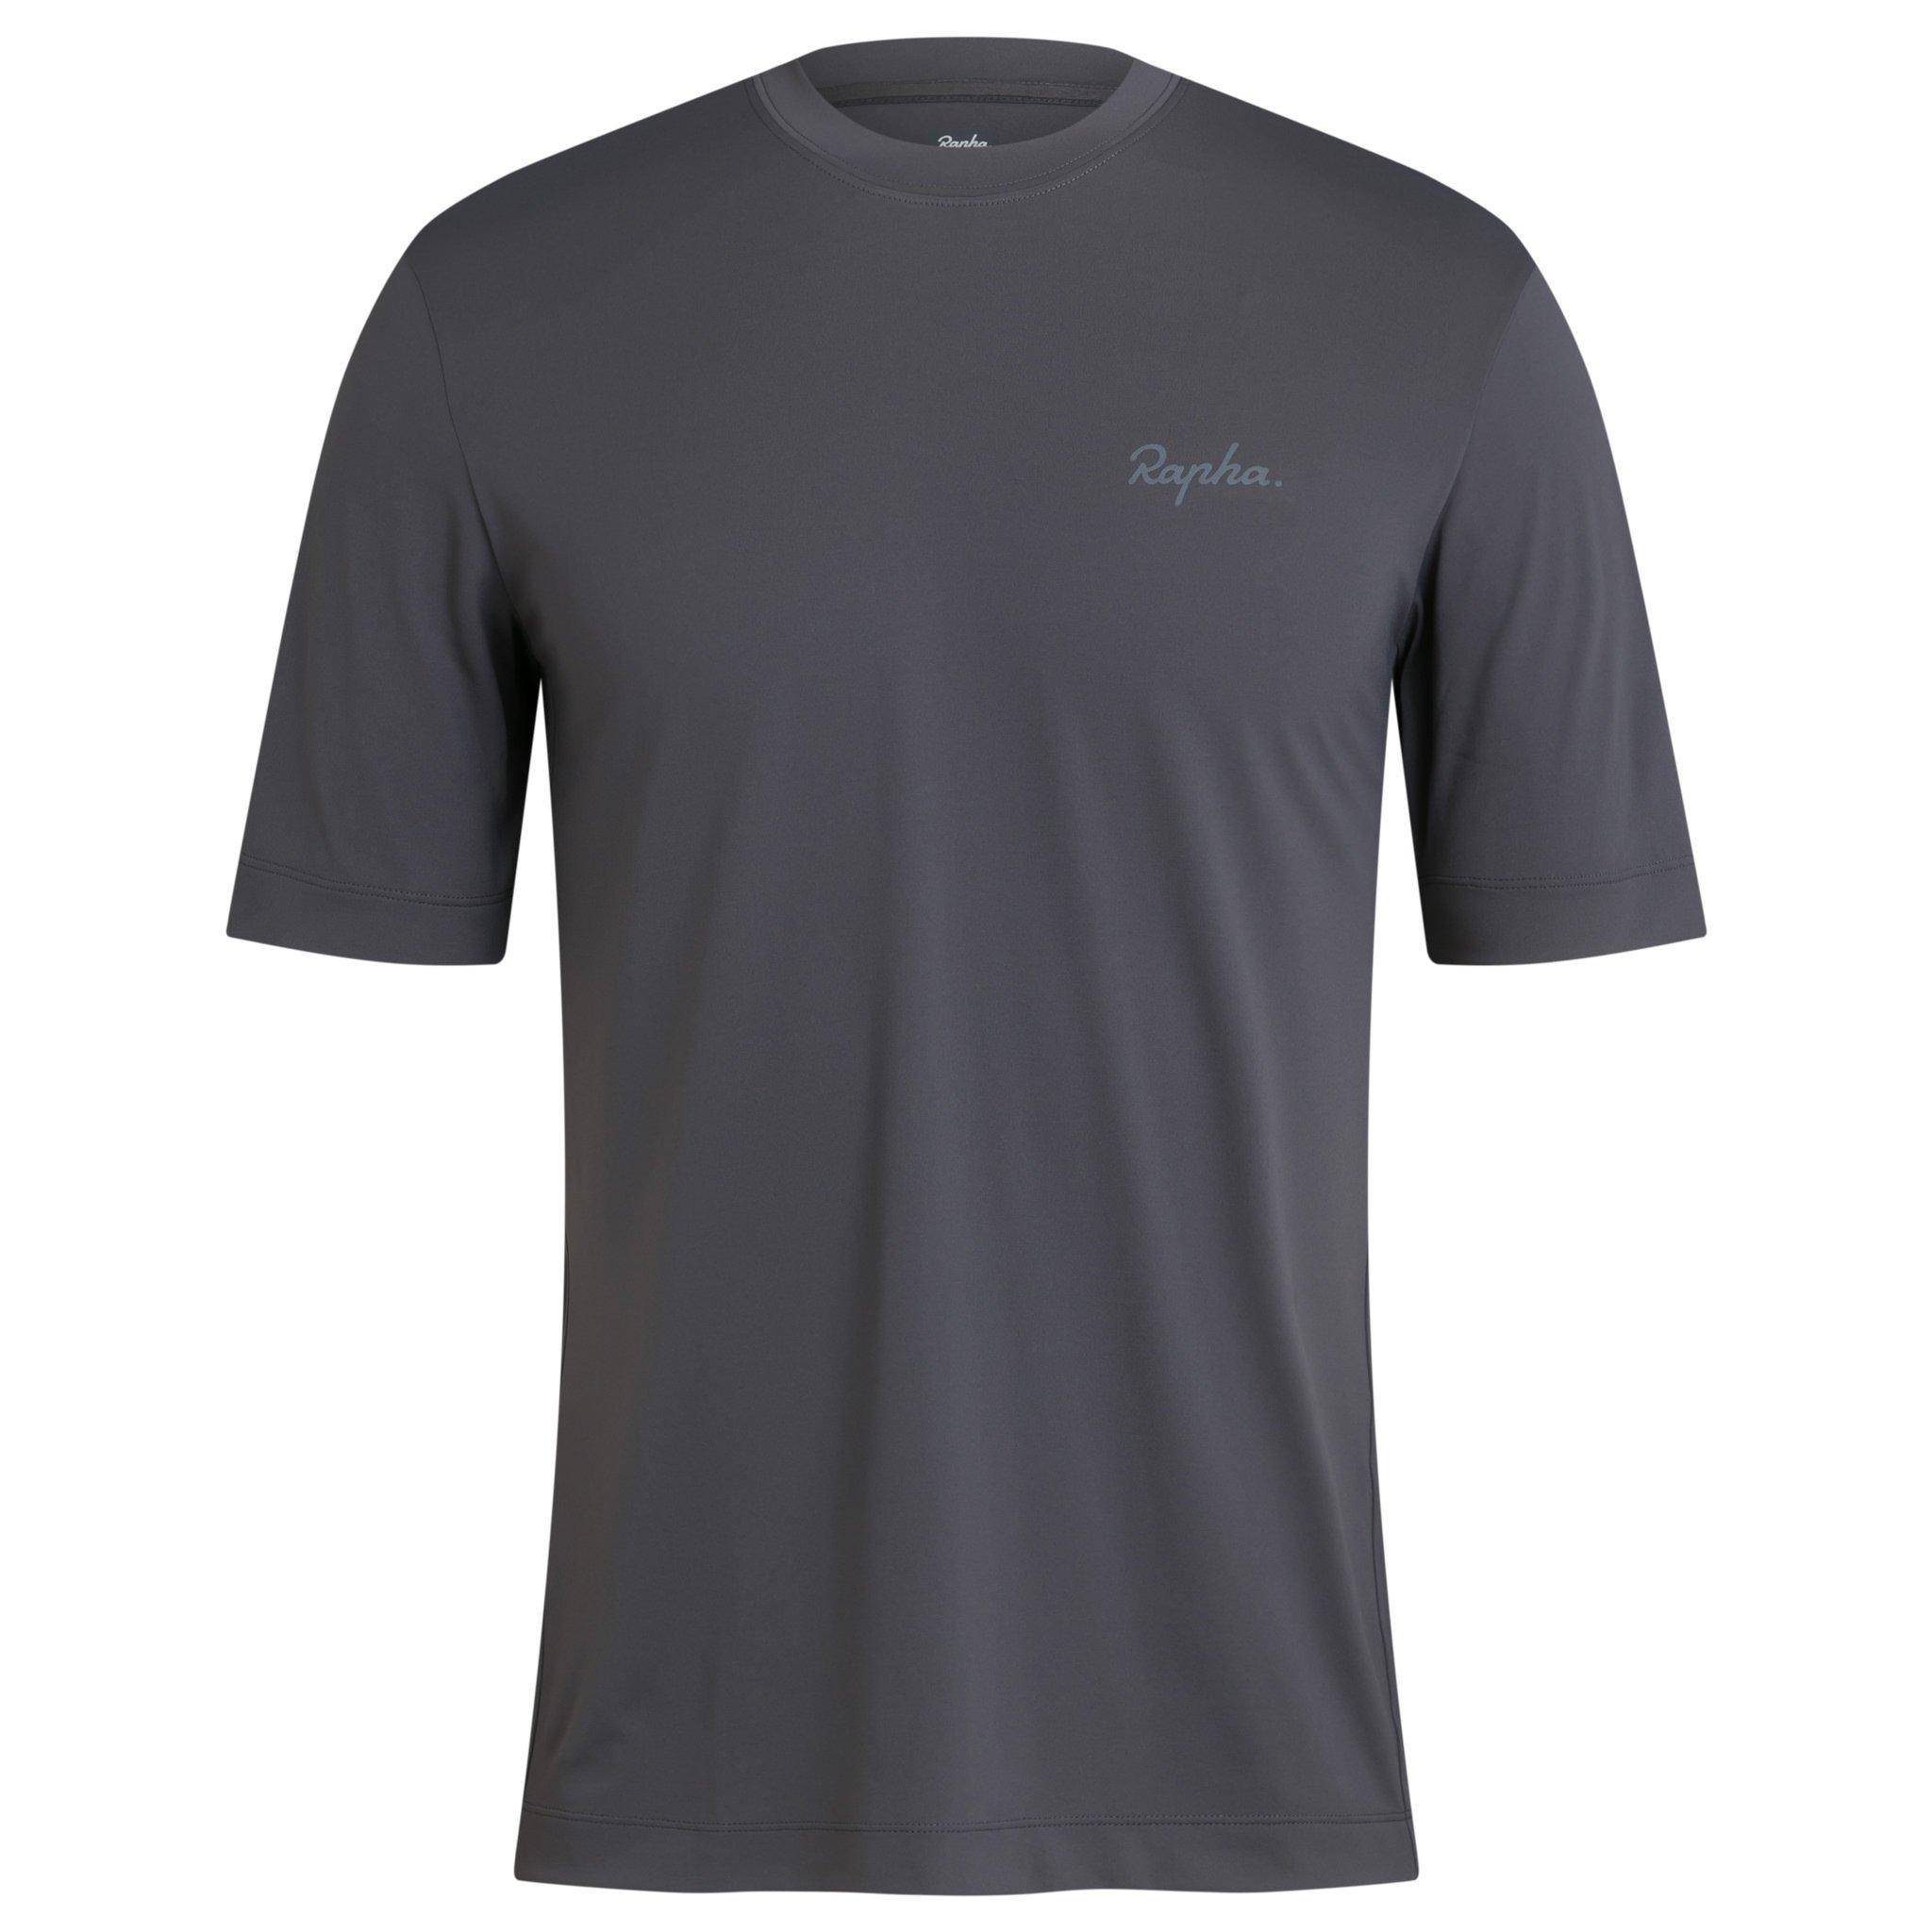 TEE SHIRT RAPHA COMMUTER REFLECTIVE GRIS